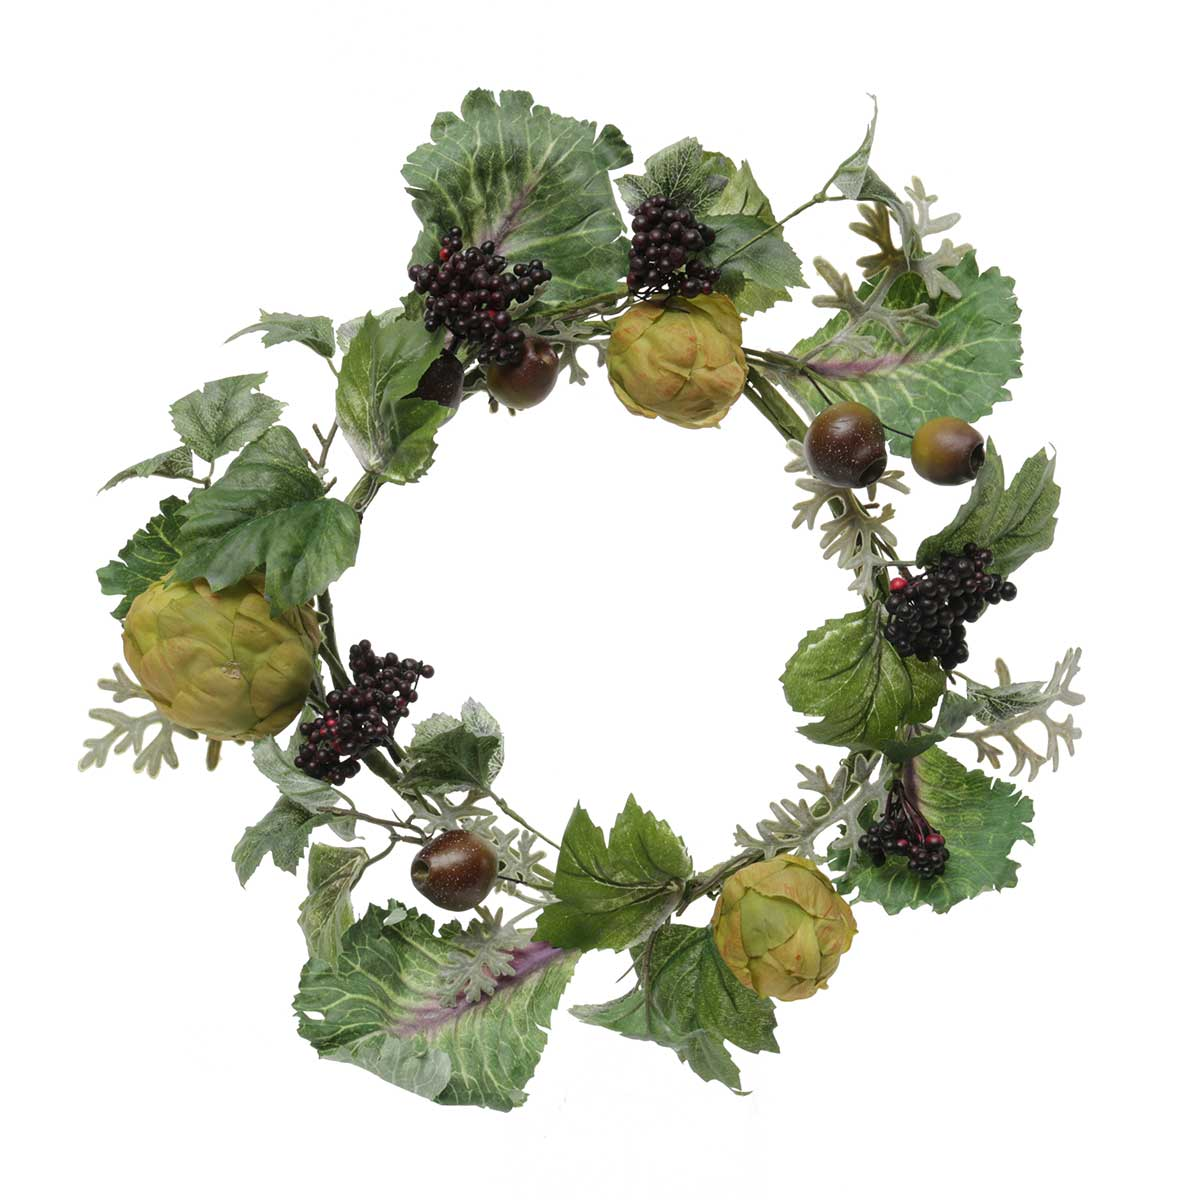 CABBAGE PATCH ARTICHOKE POD WREATH 15""